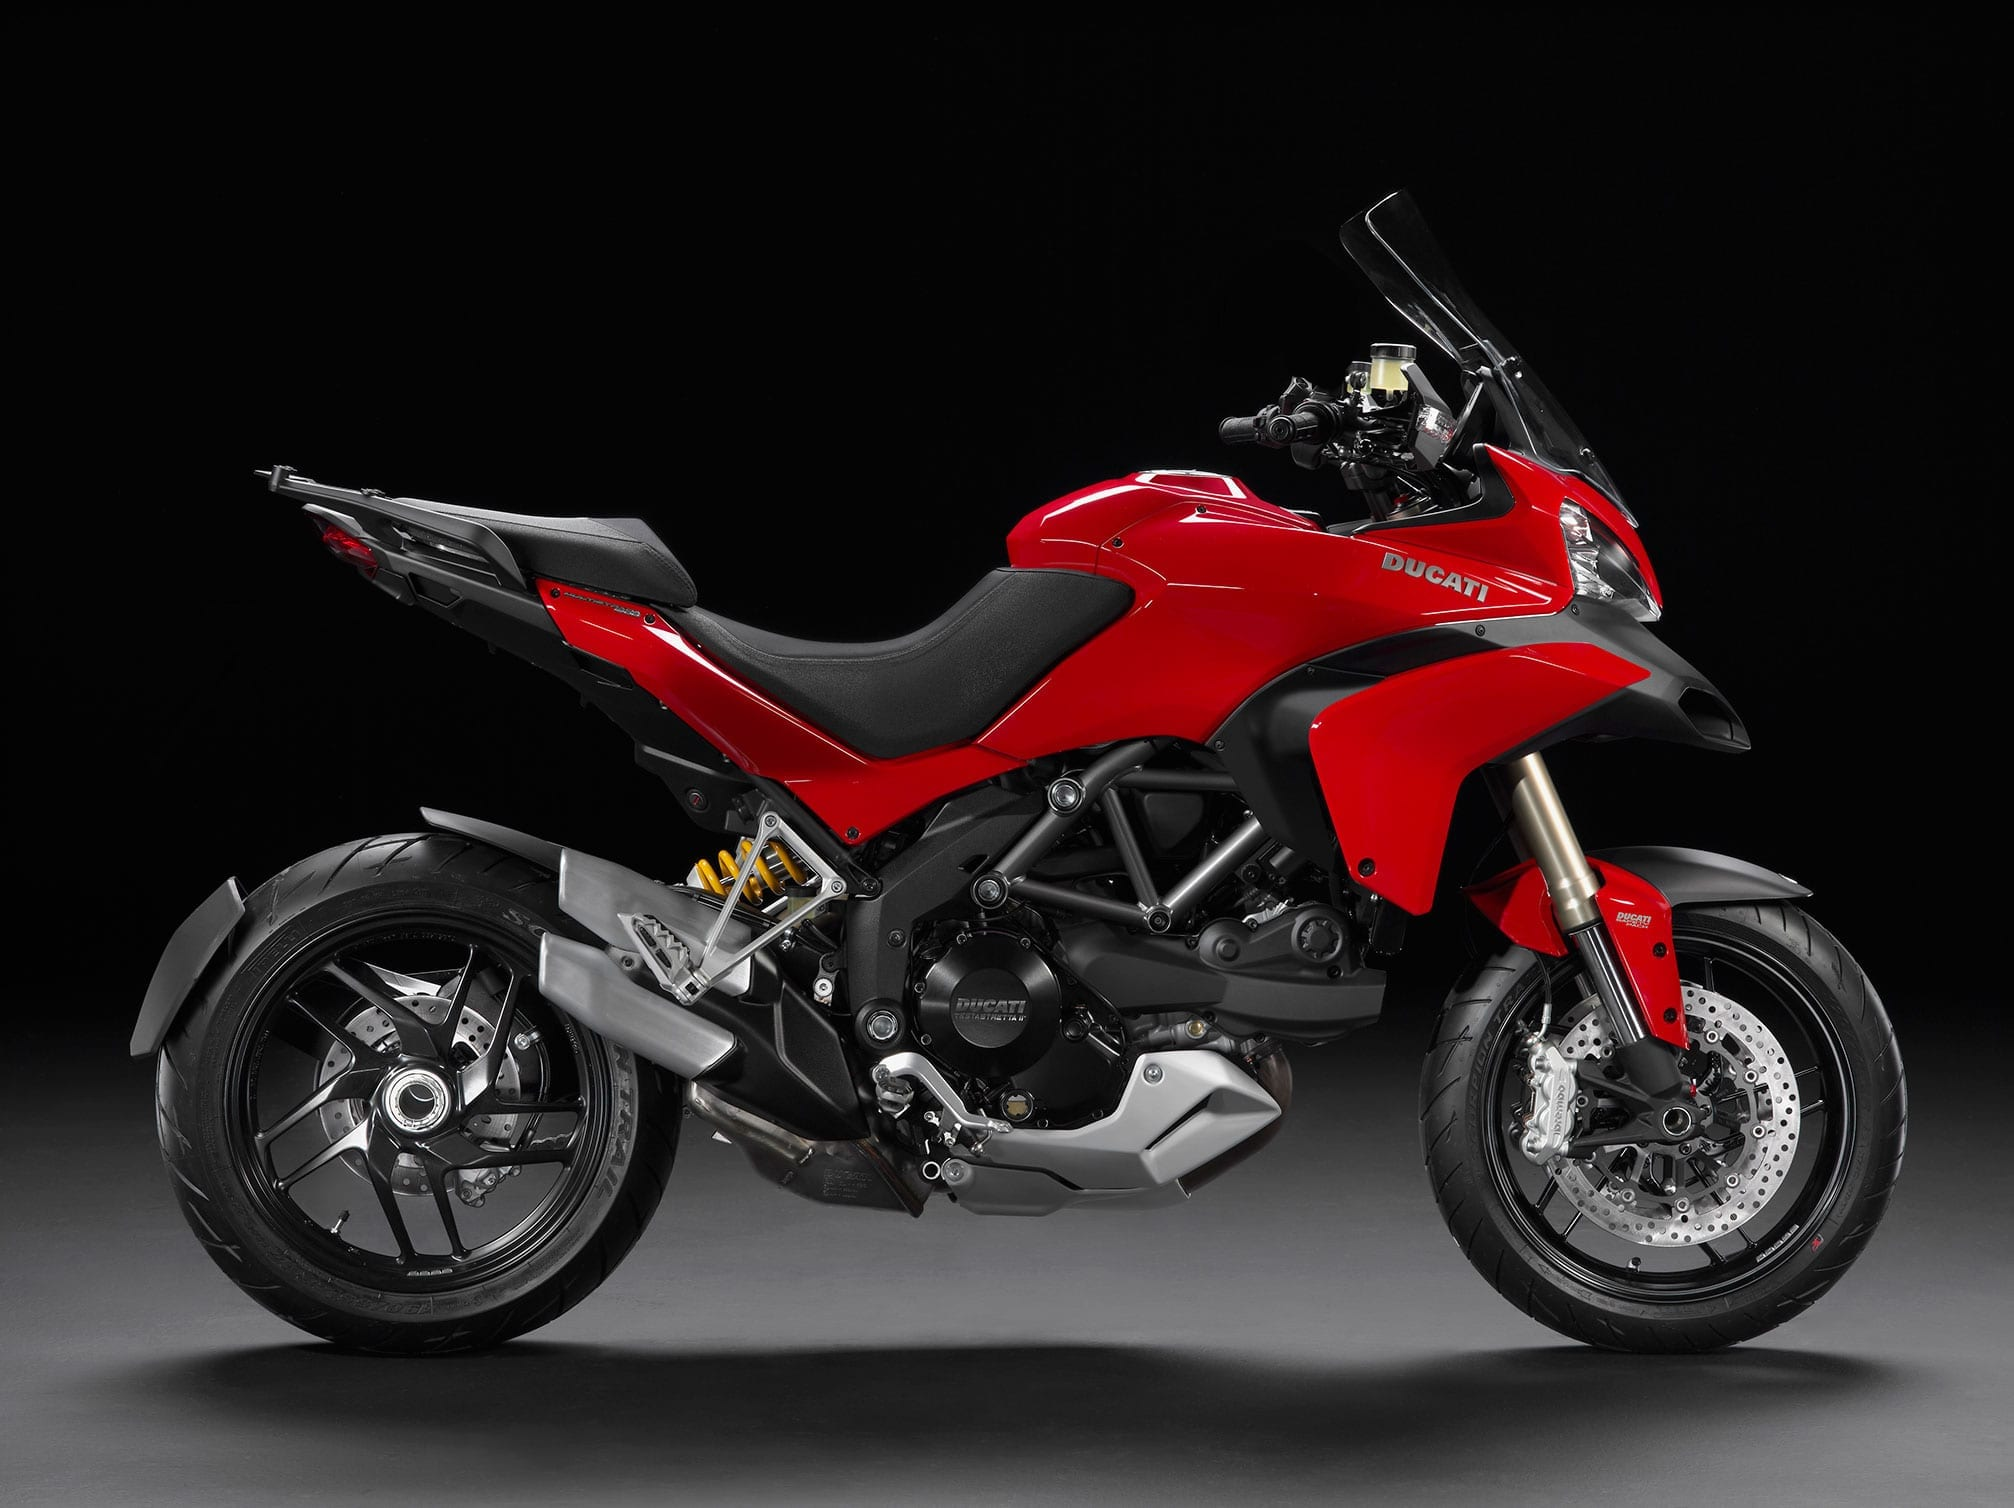 2015 Ducati Multistrada - options and UK prices